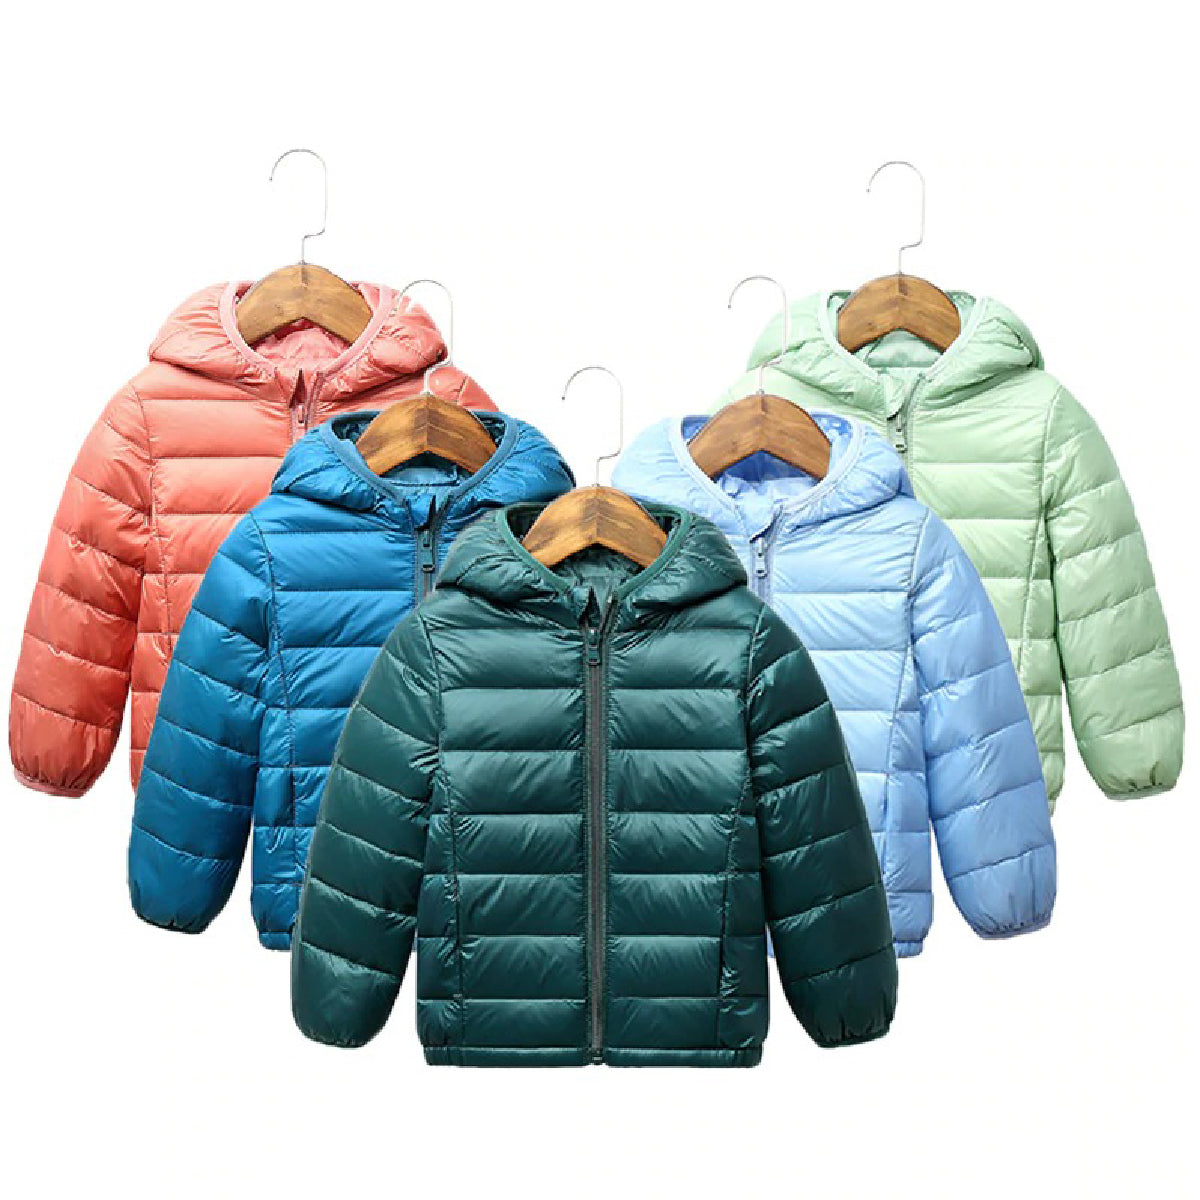 Baby Zone Winter Snowsuit ™